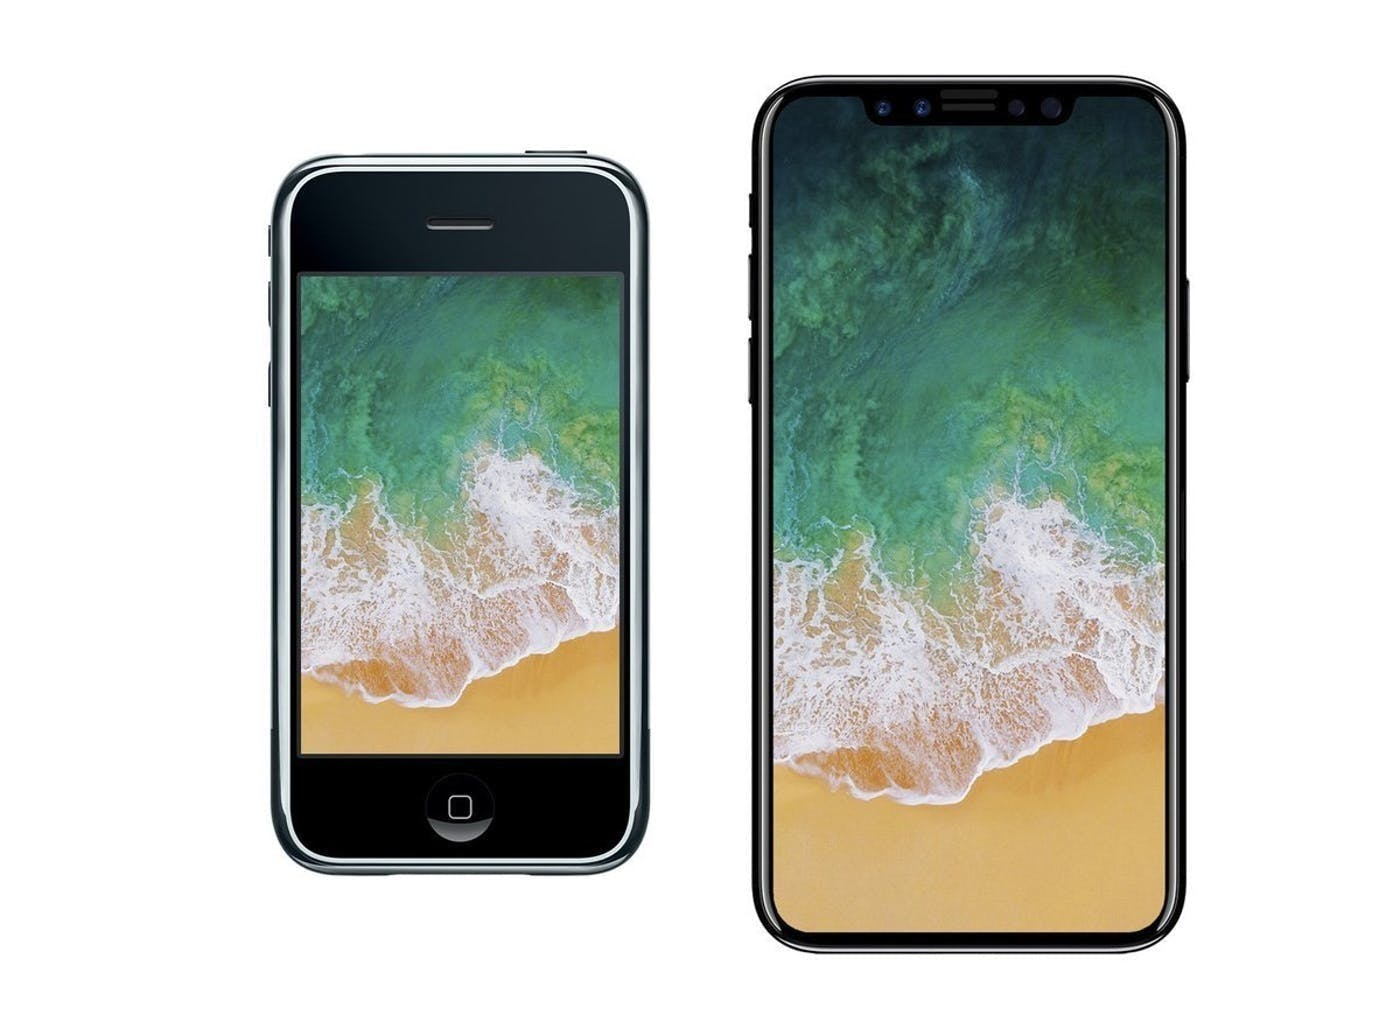 110c828a9277e1 Here's Everything We Know (So Far) About Apple's iPhone 9 | Inverse